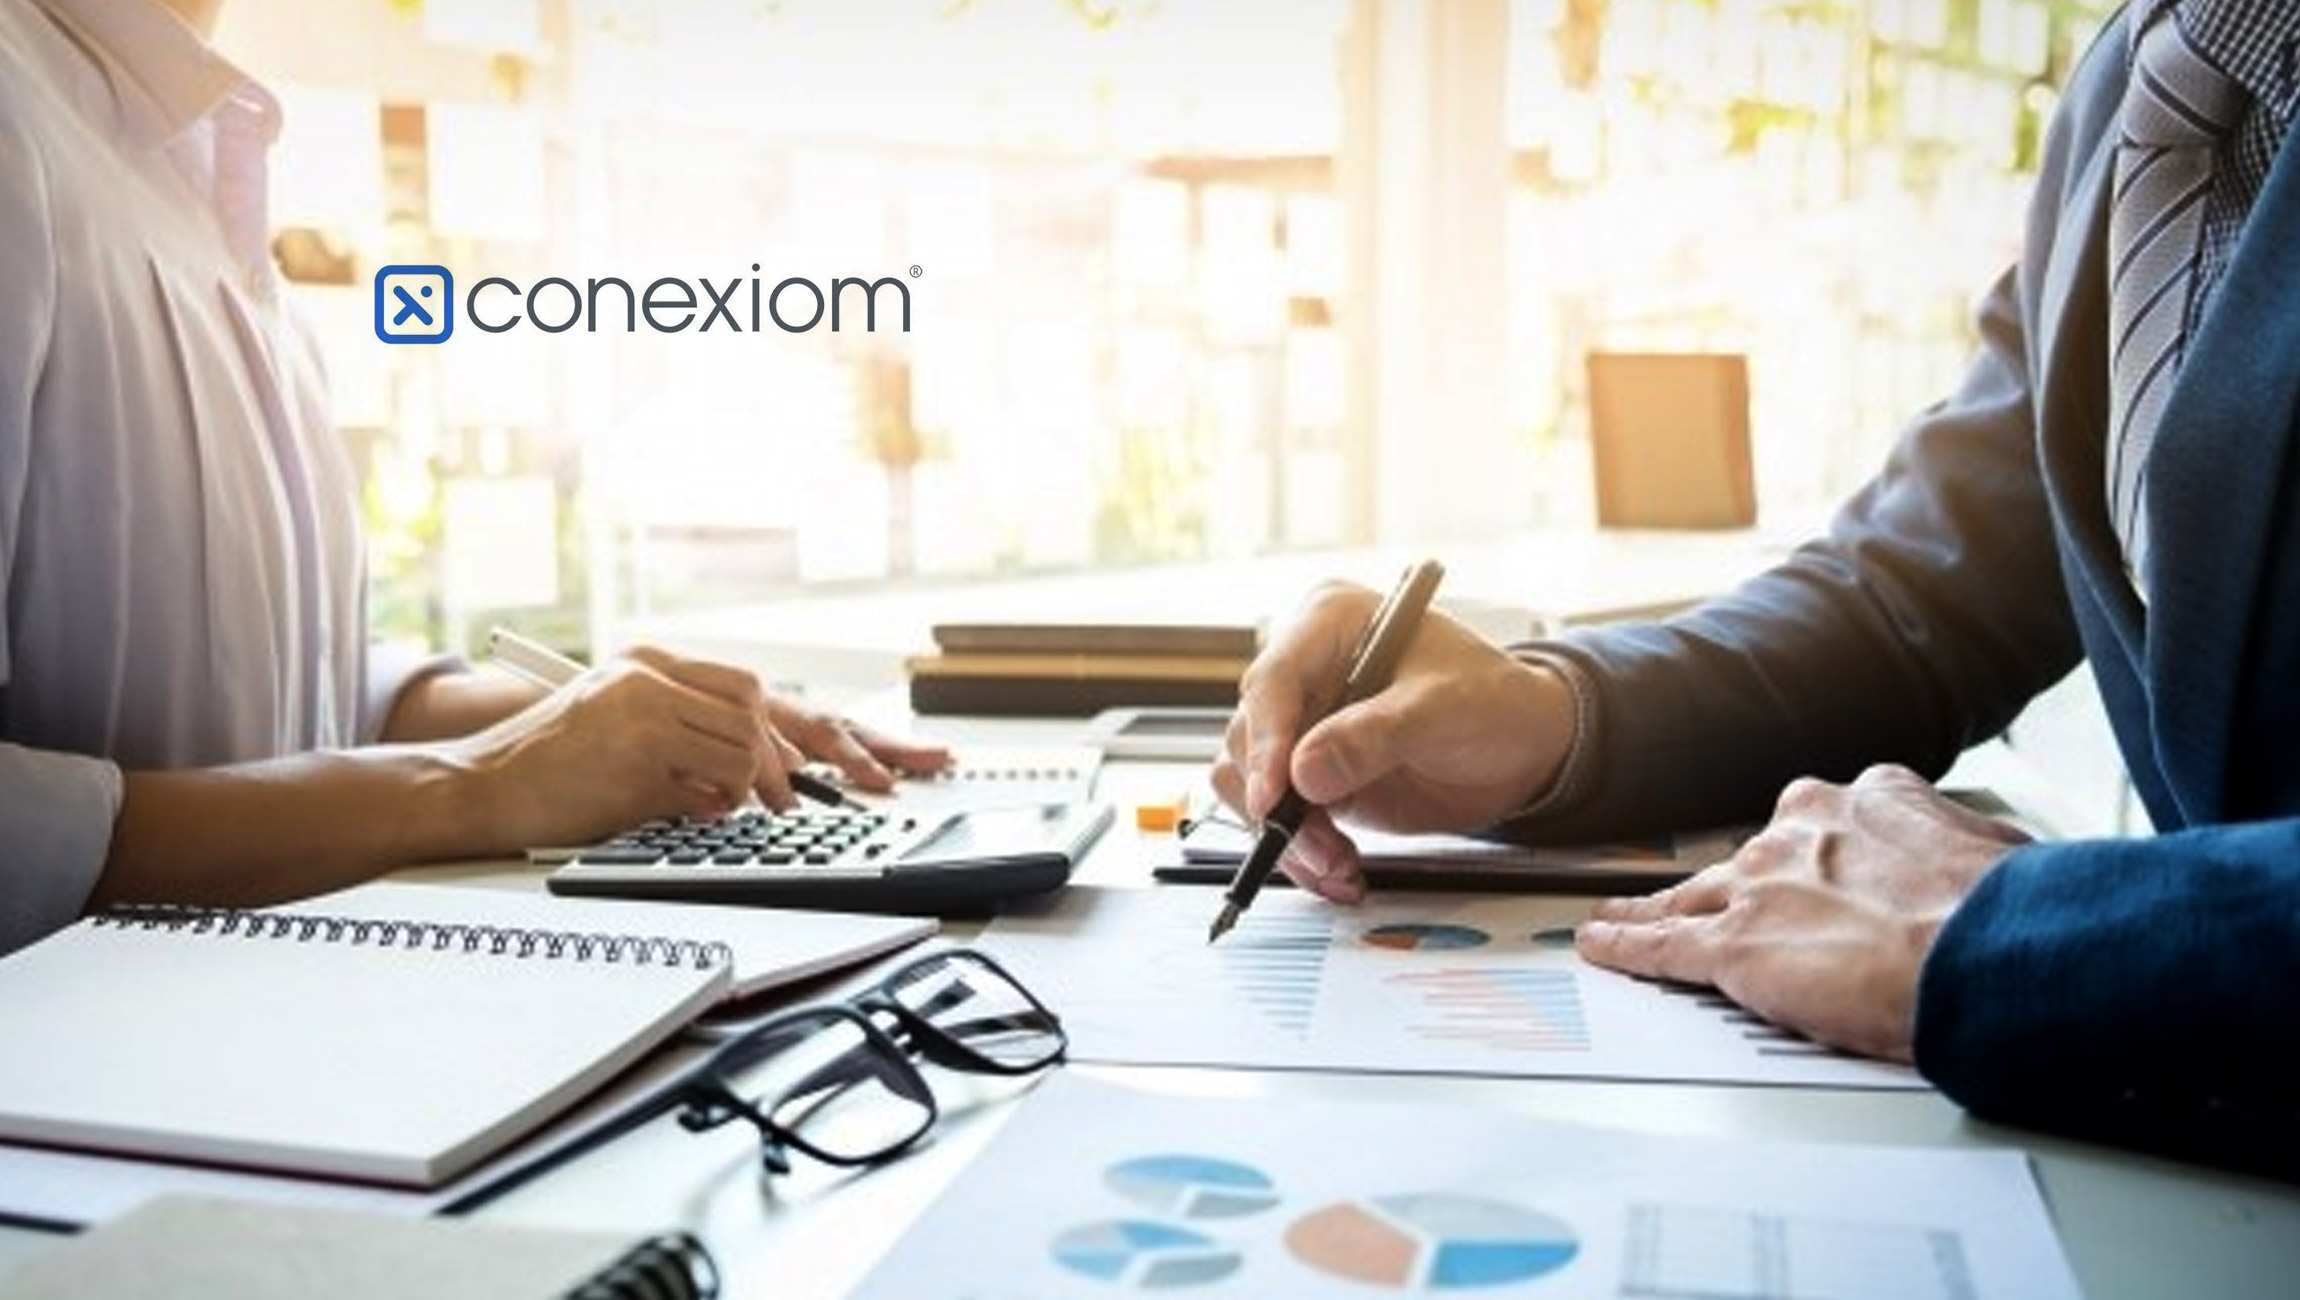 Conexiom Reports Record Performance, New Leadership to Drive Growth